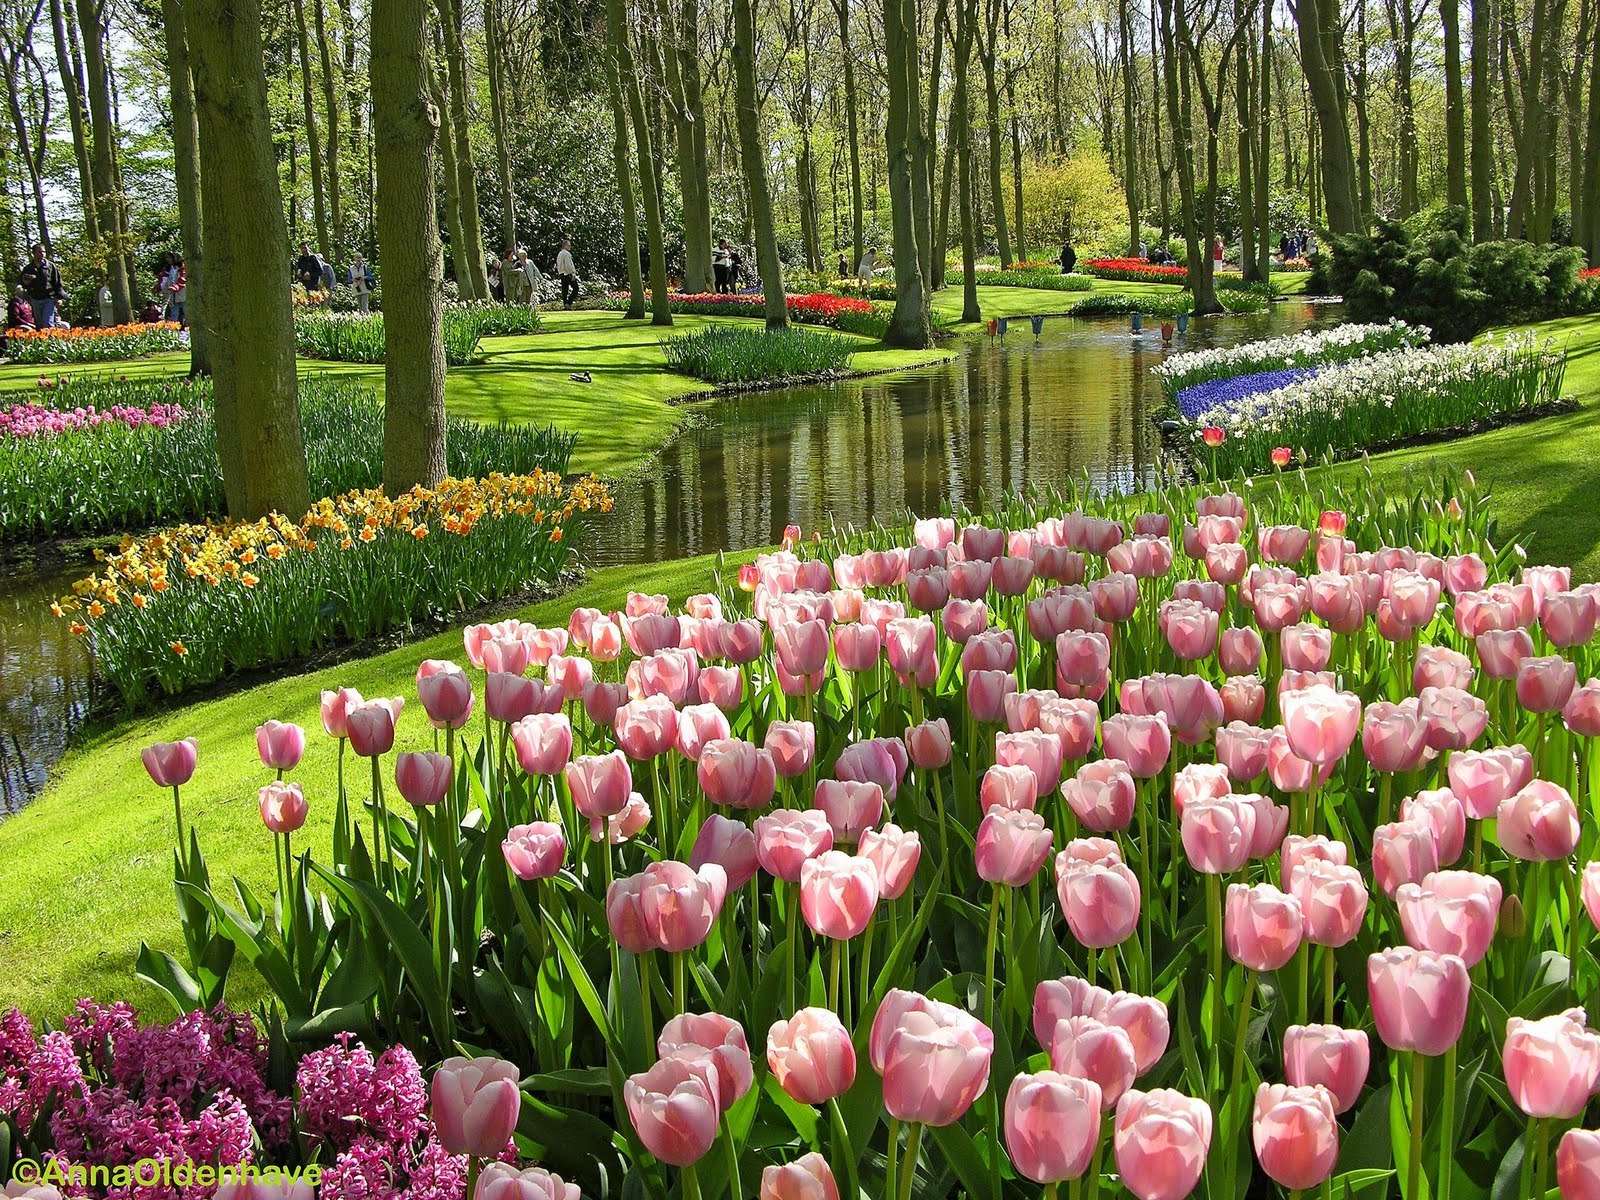 My Blog Gallery Assorted Images of Beautiful and Colorful Tulips